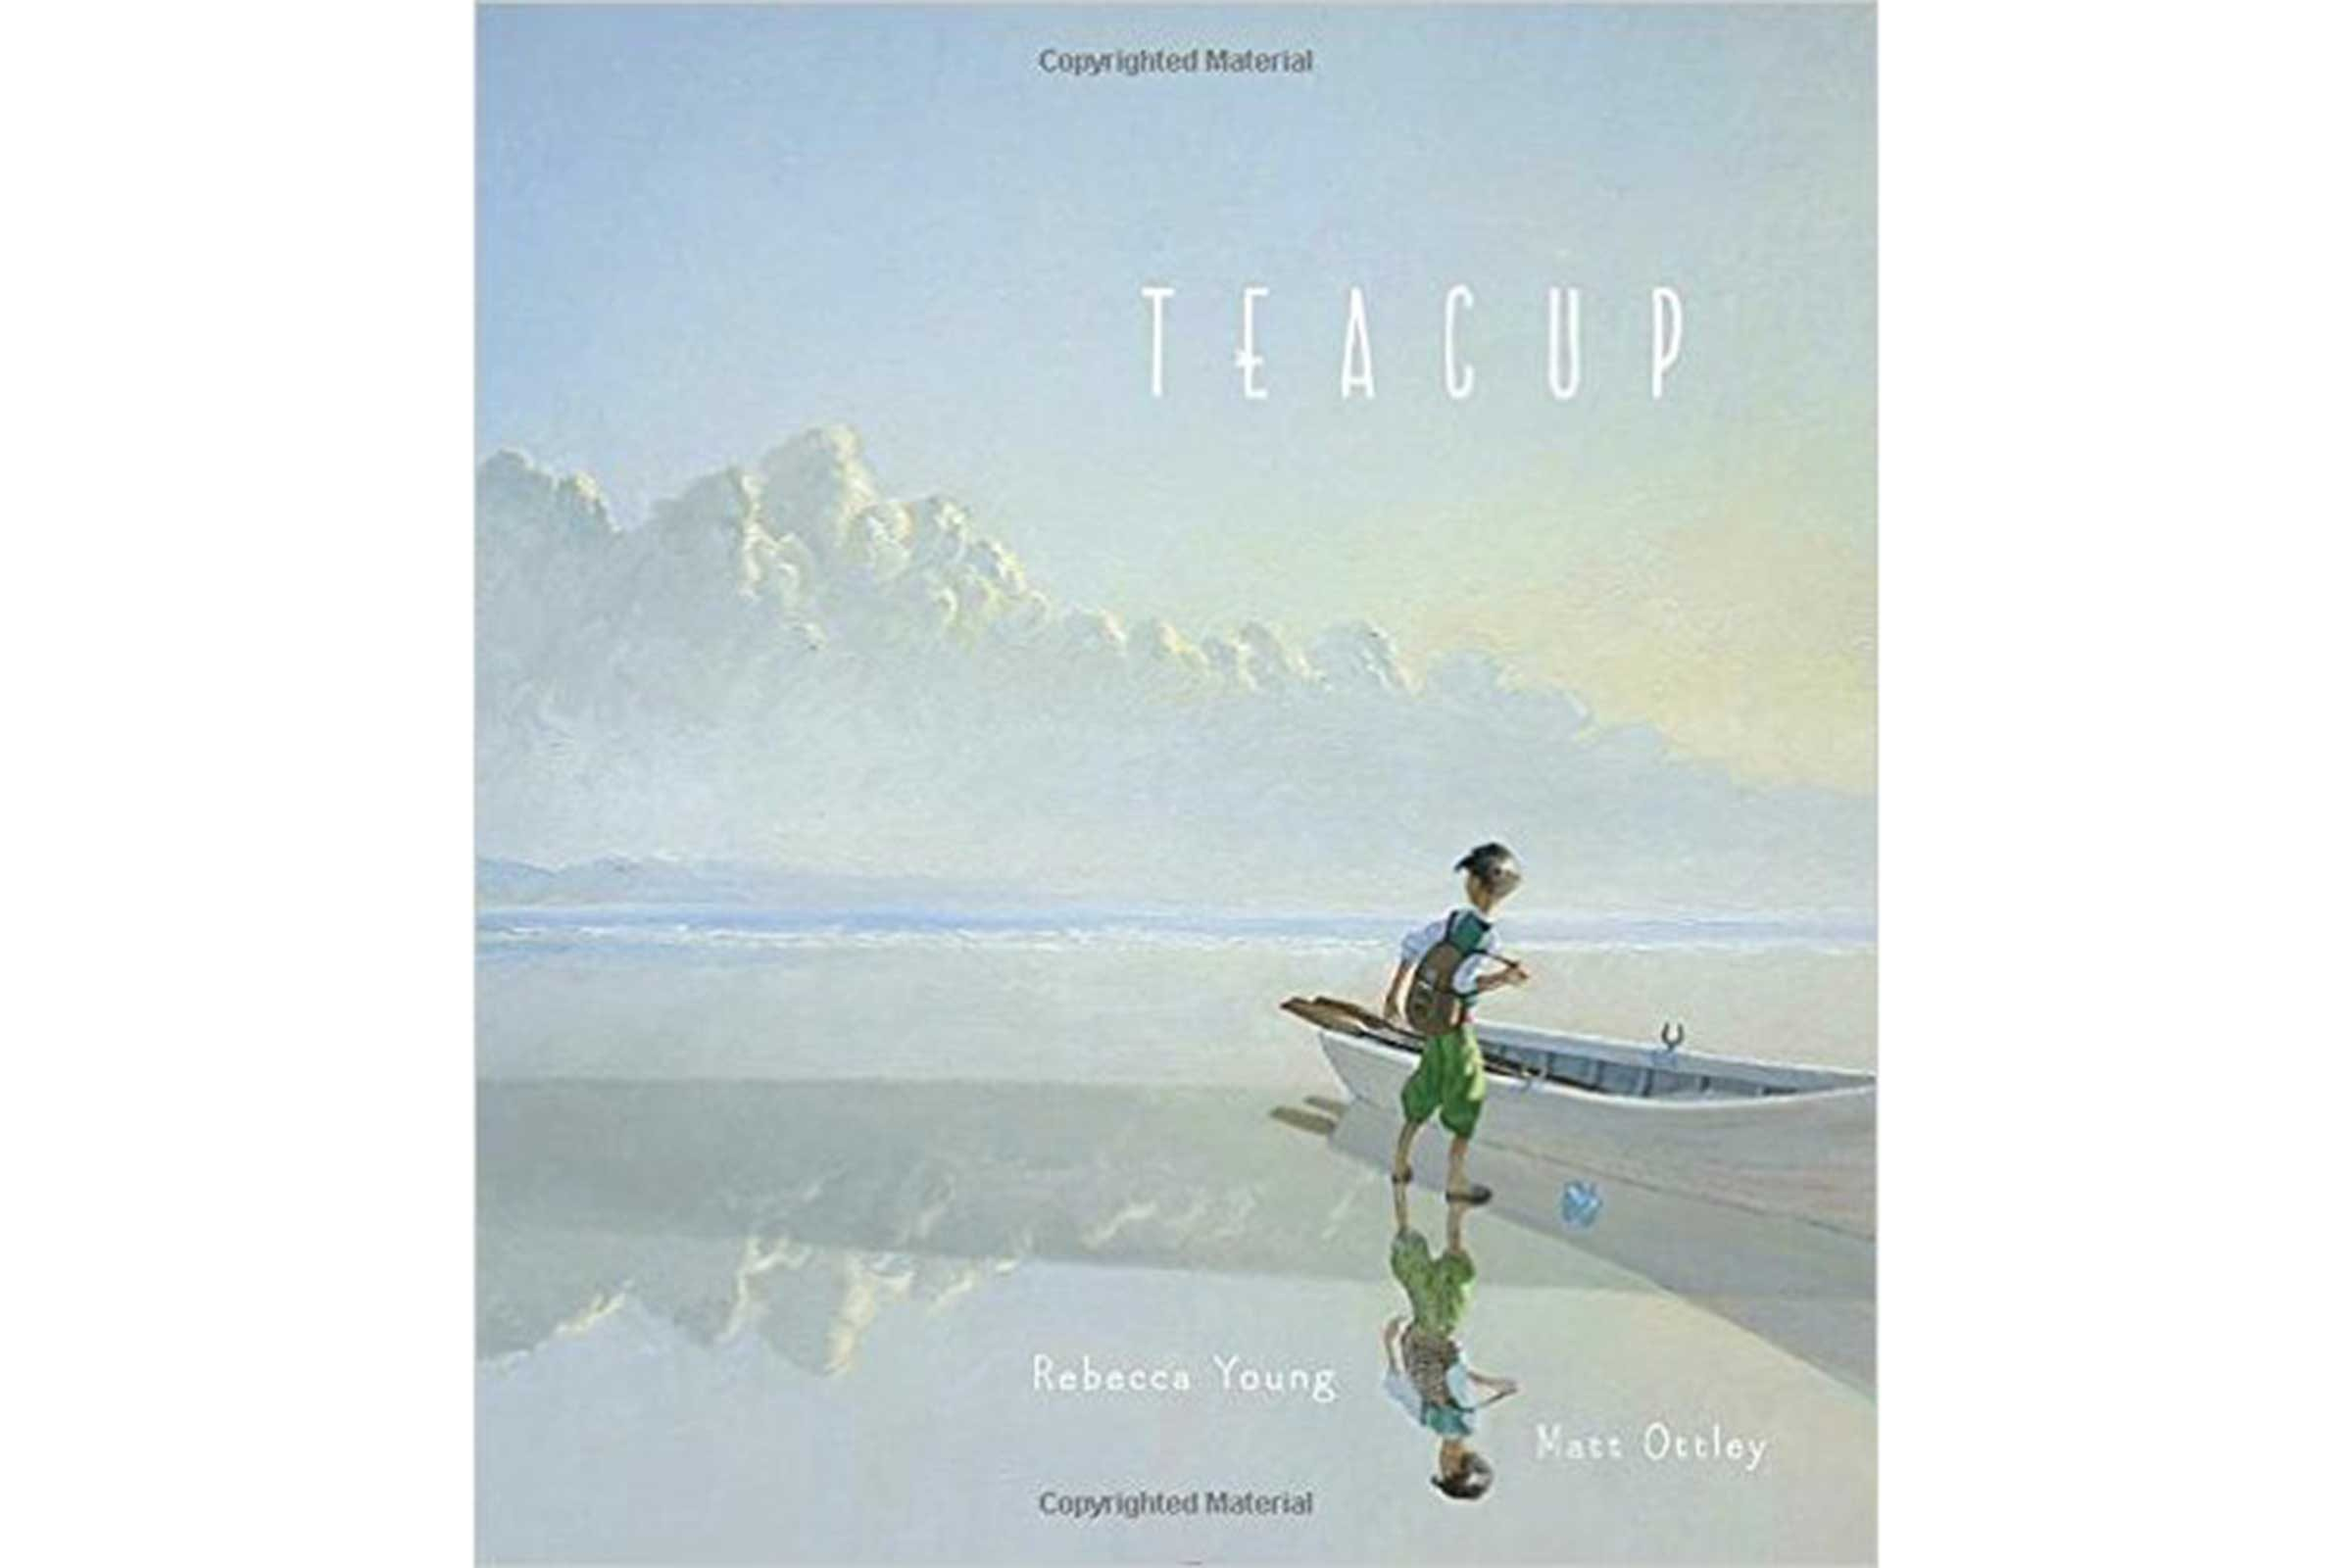 'Teacup' by Rebecca Young